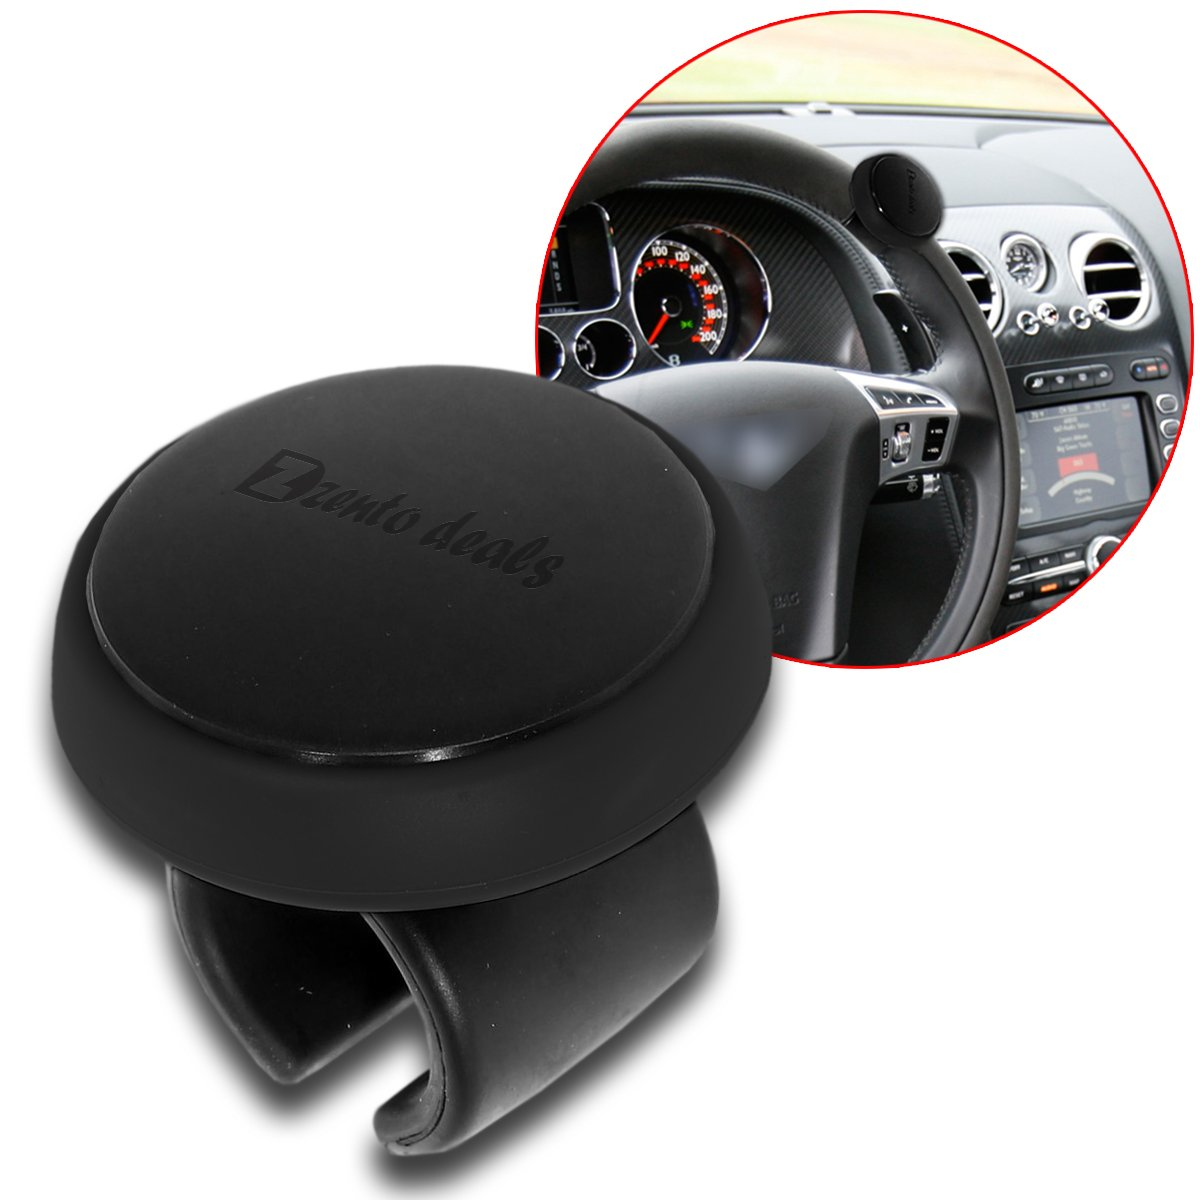 Best Auto Car Steering Wheel Aid Spinner Spin Clamp Knob Ball Booster 85mm*55mm\t Fast Color Electric Vehicle Parts Automobiles & Motorcycles